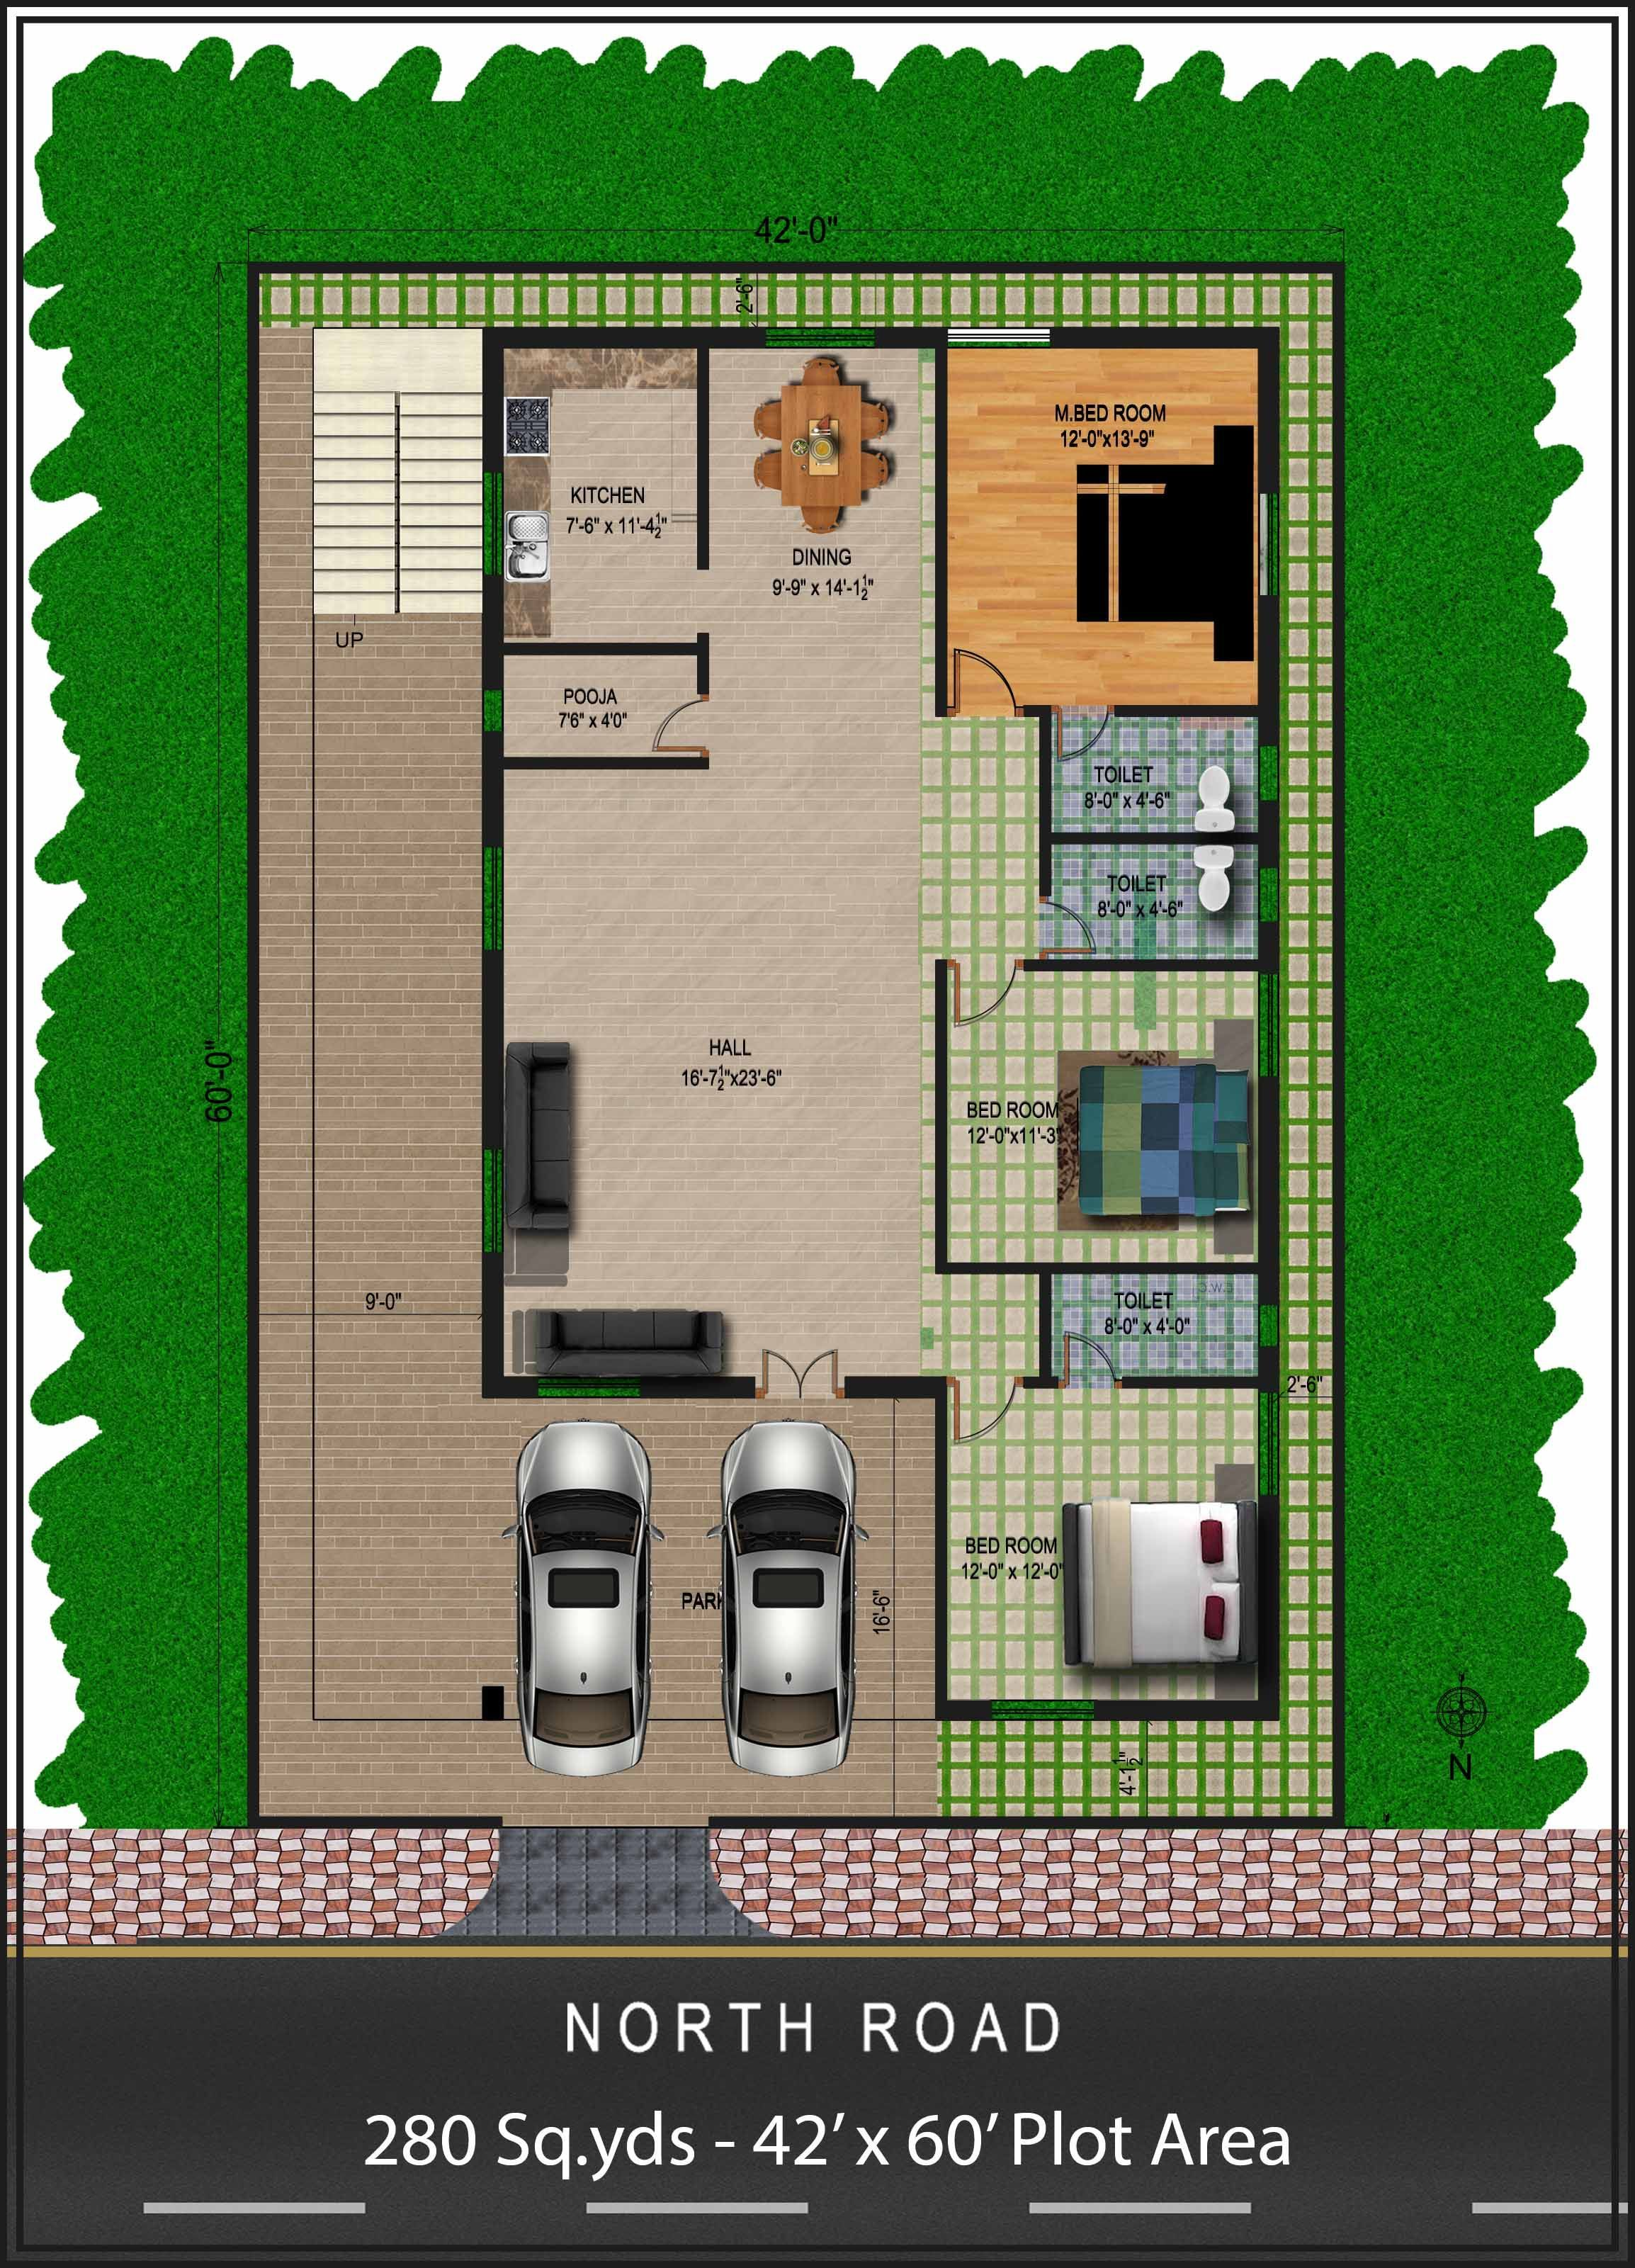 30x40 2 Bedroom House Plans Plans For East Facing Plot Vastu North Facing House 2bhk House Plan One Level House Plans